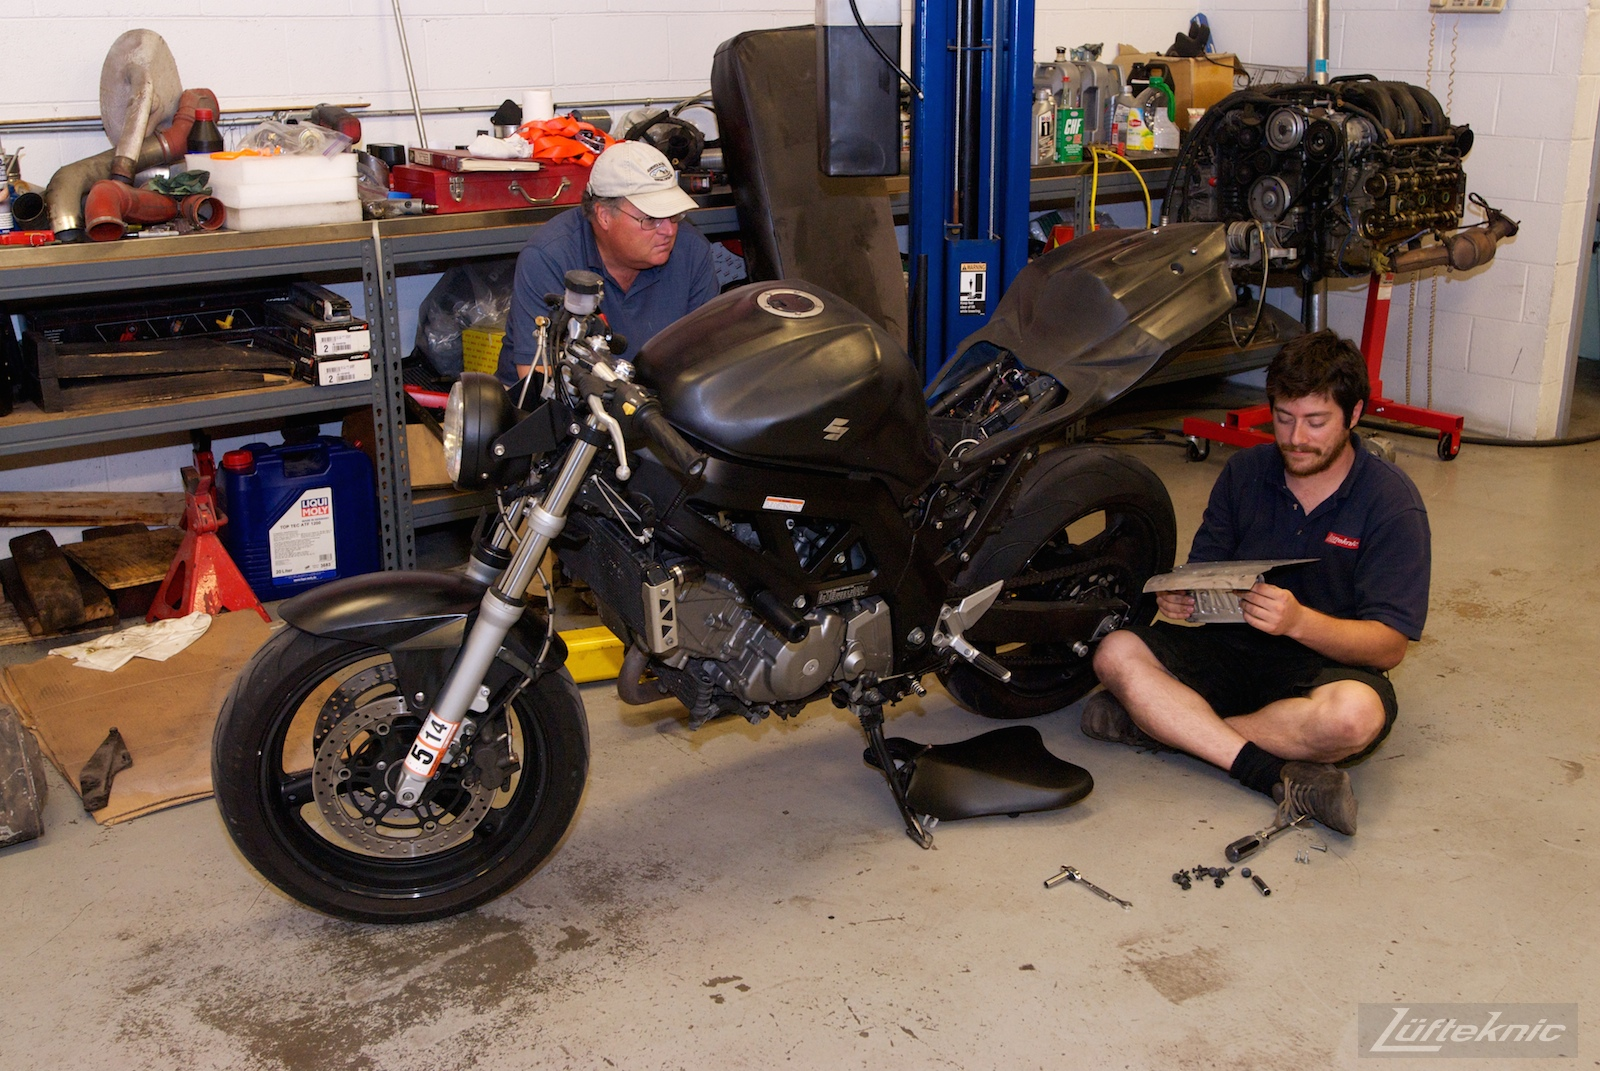 Time out for motorcycle work.